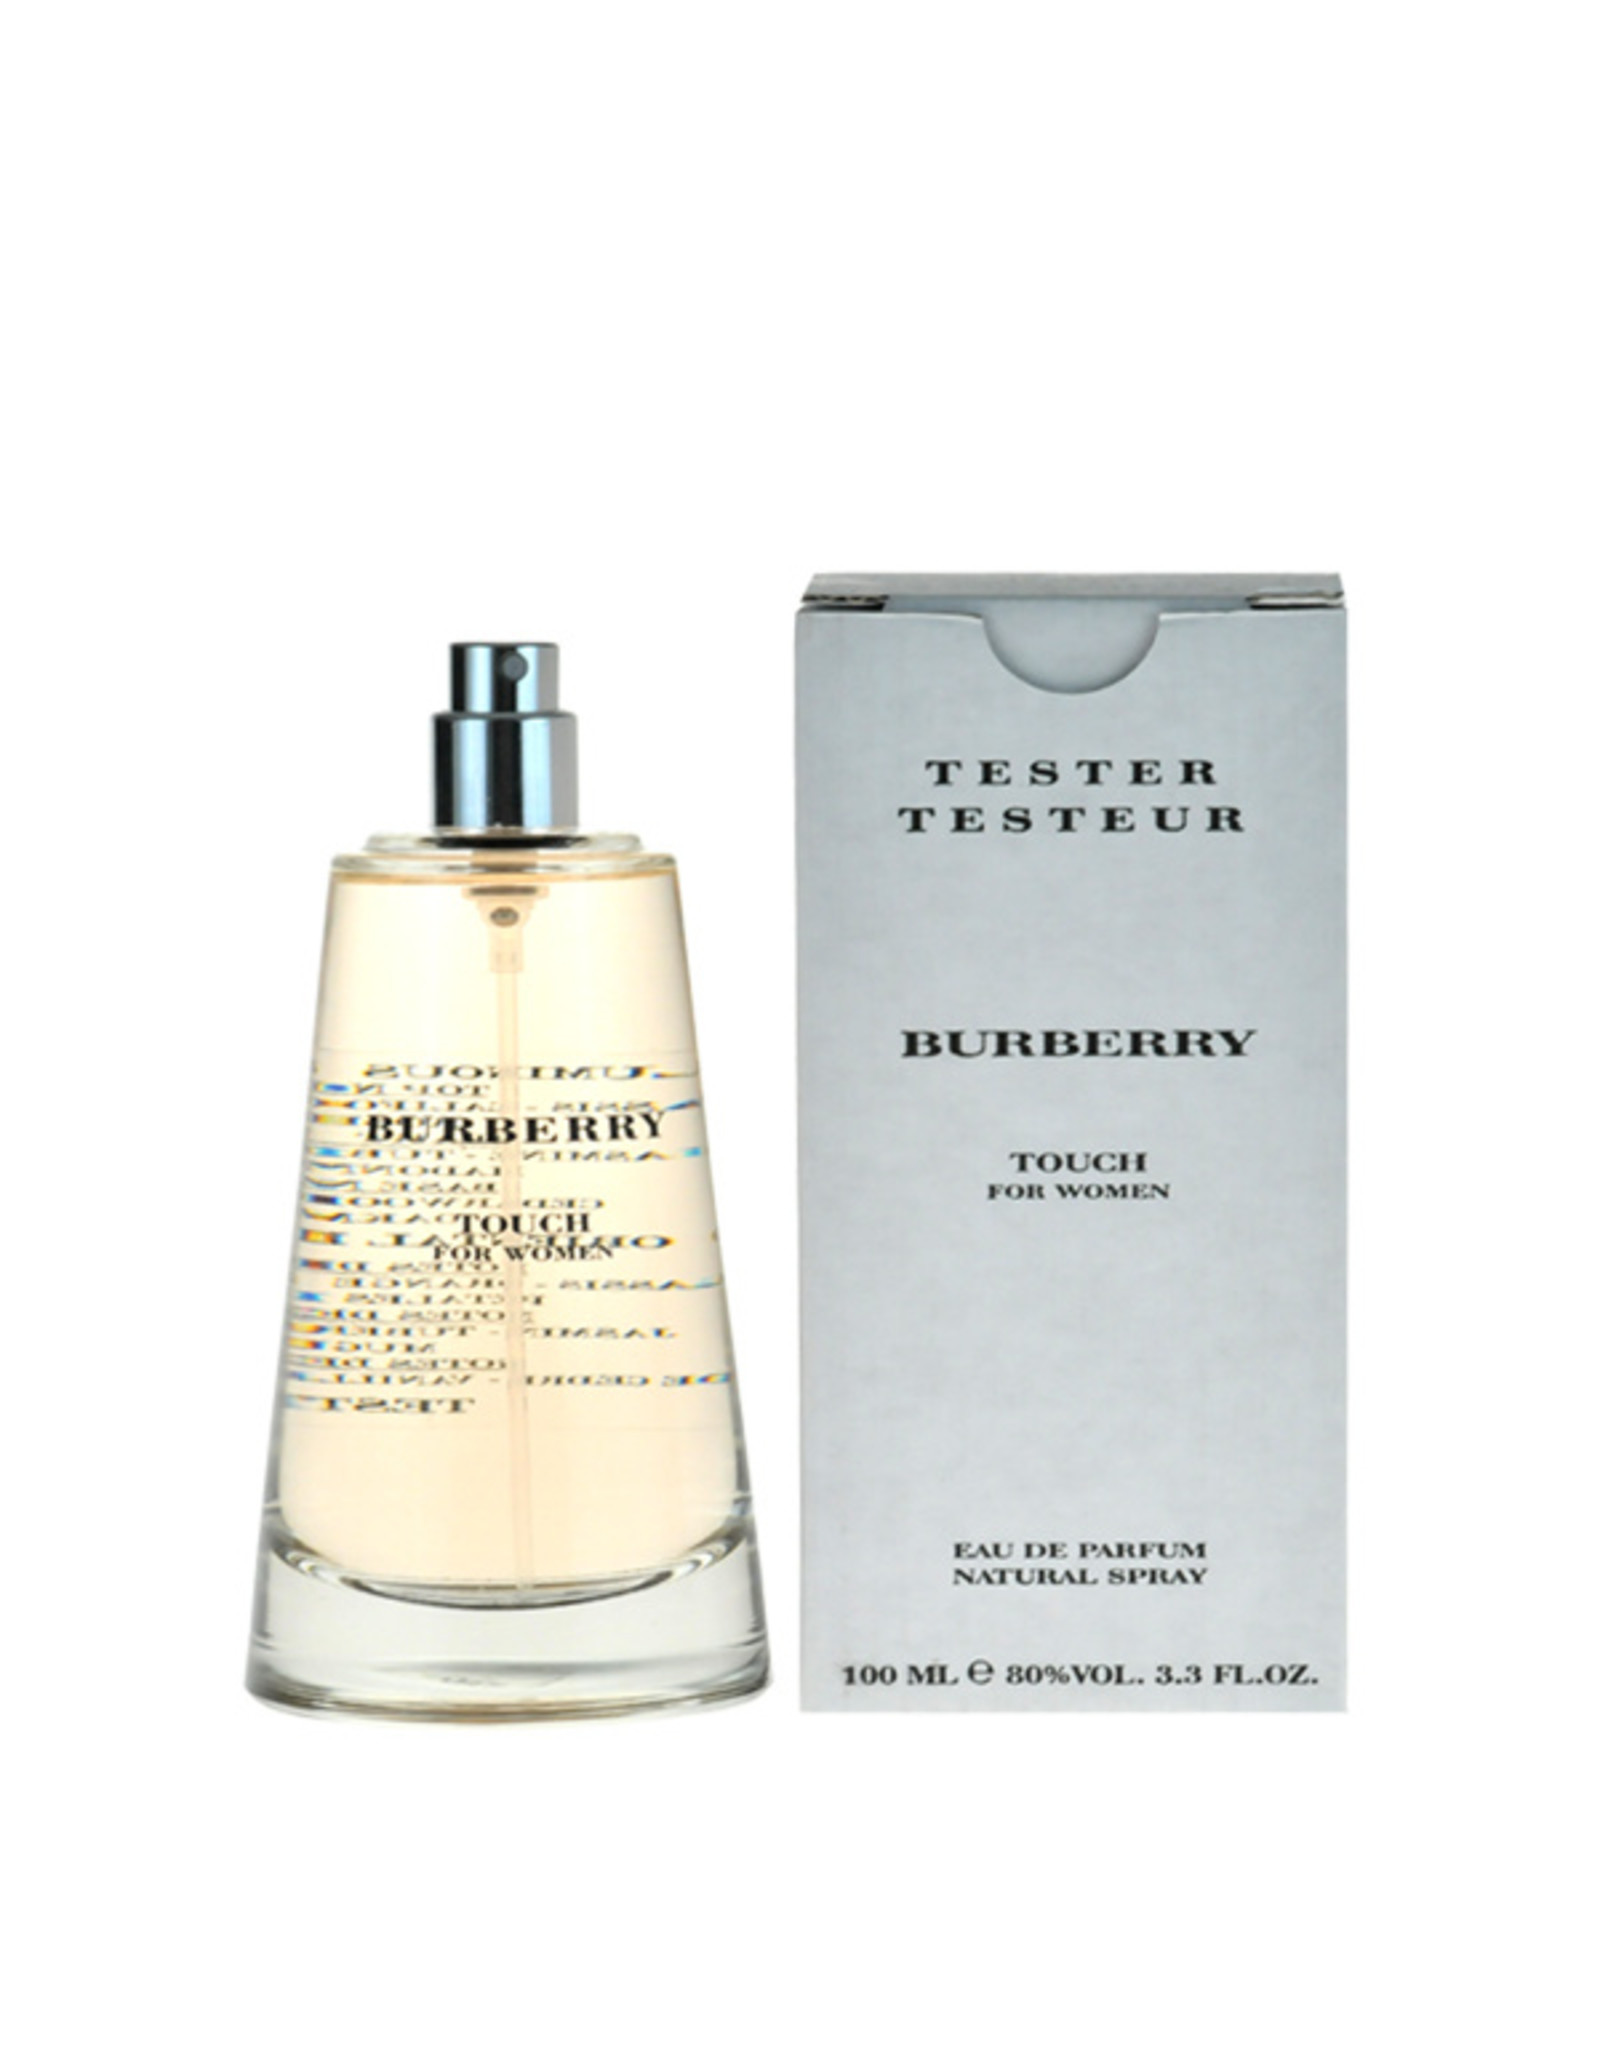 BURBERRY BURBERRY TOUCH POUR FEMME